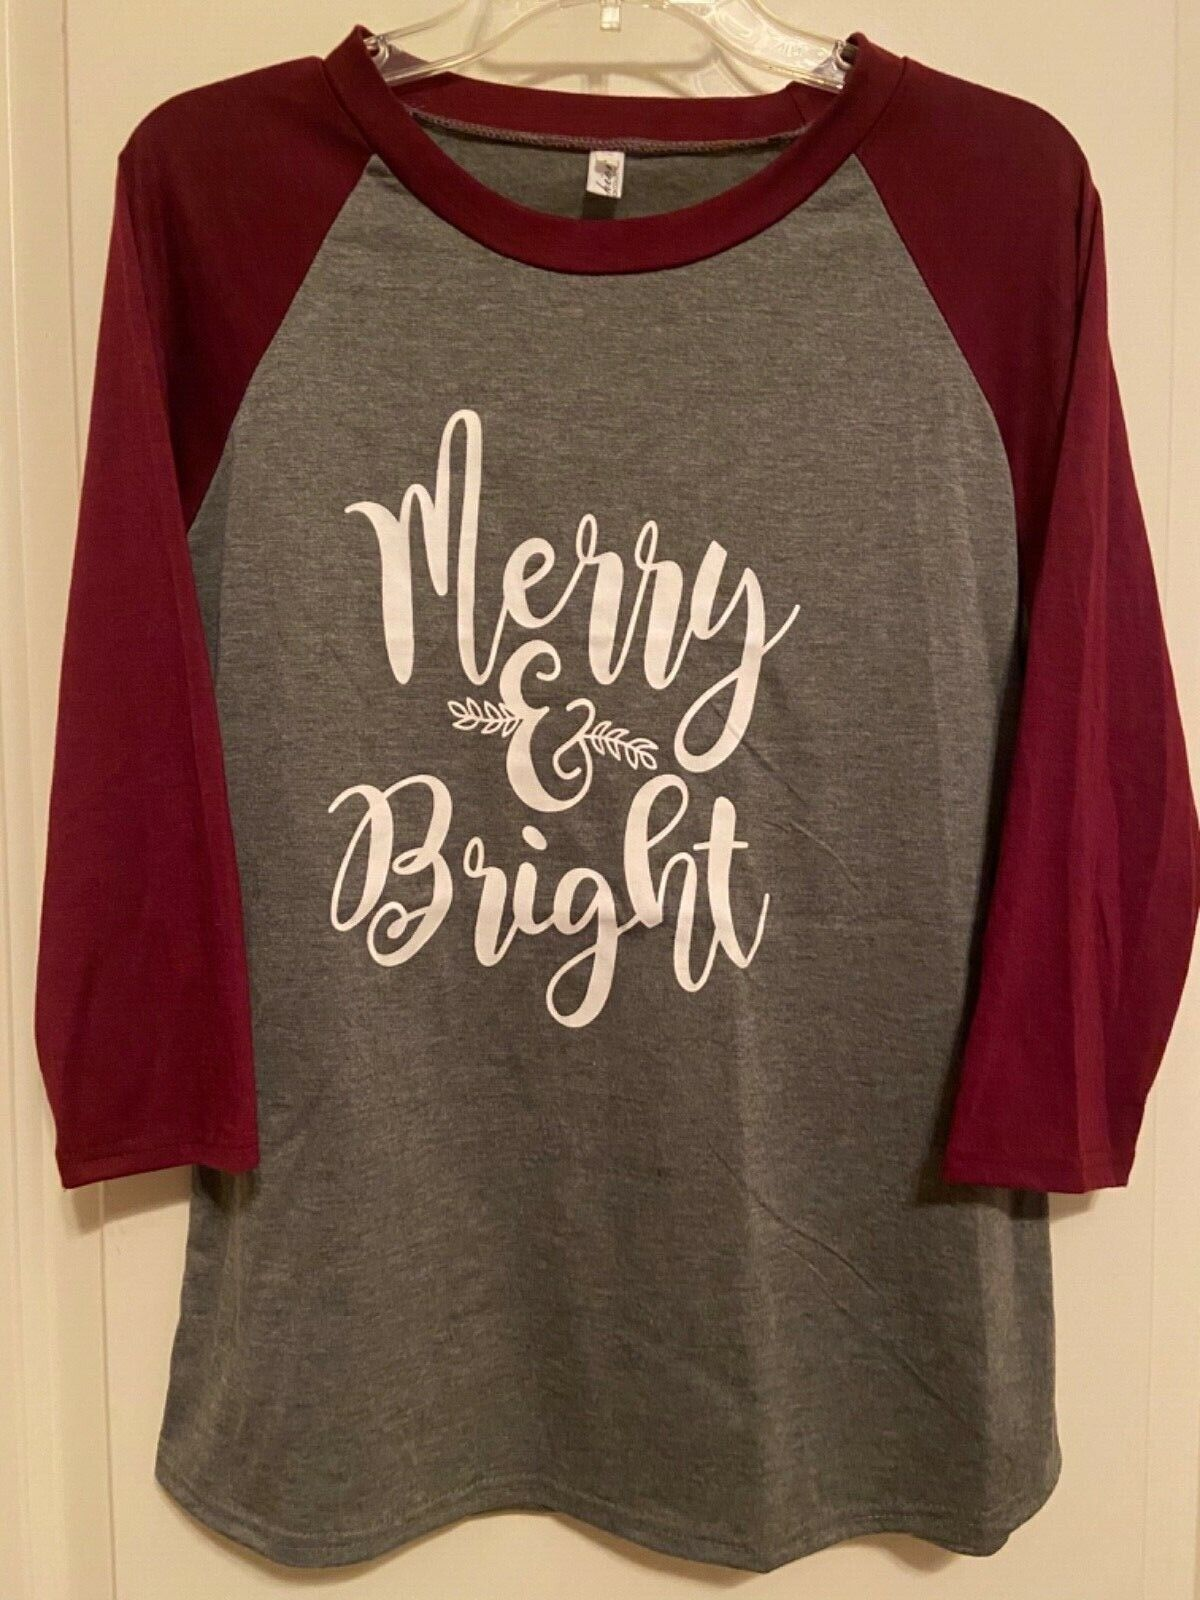 (Merry and Bright) Christmas 3/4 sleeve shirt